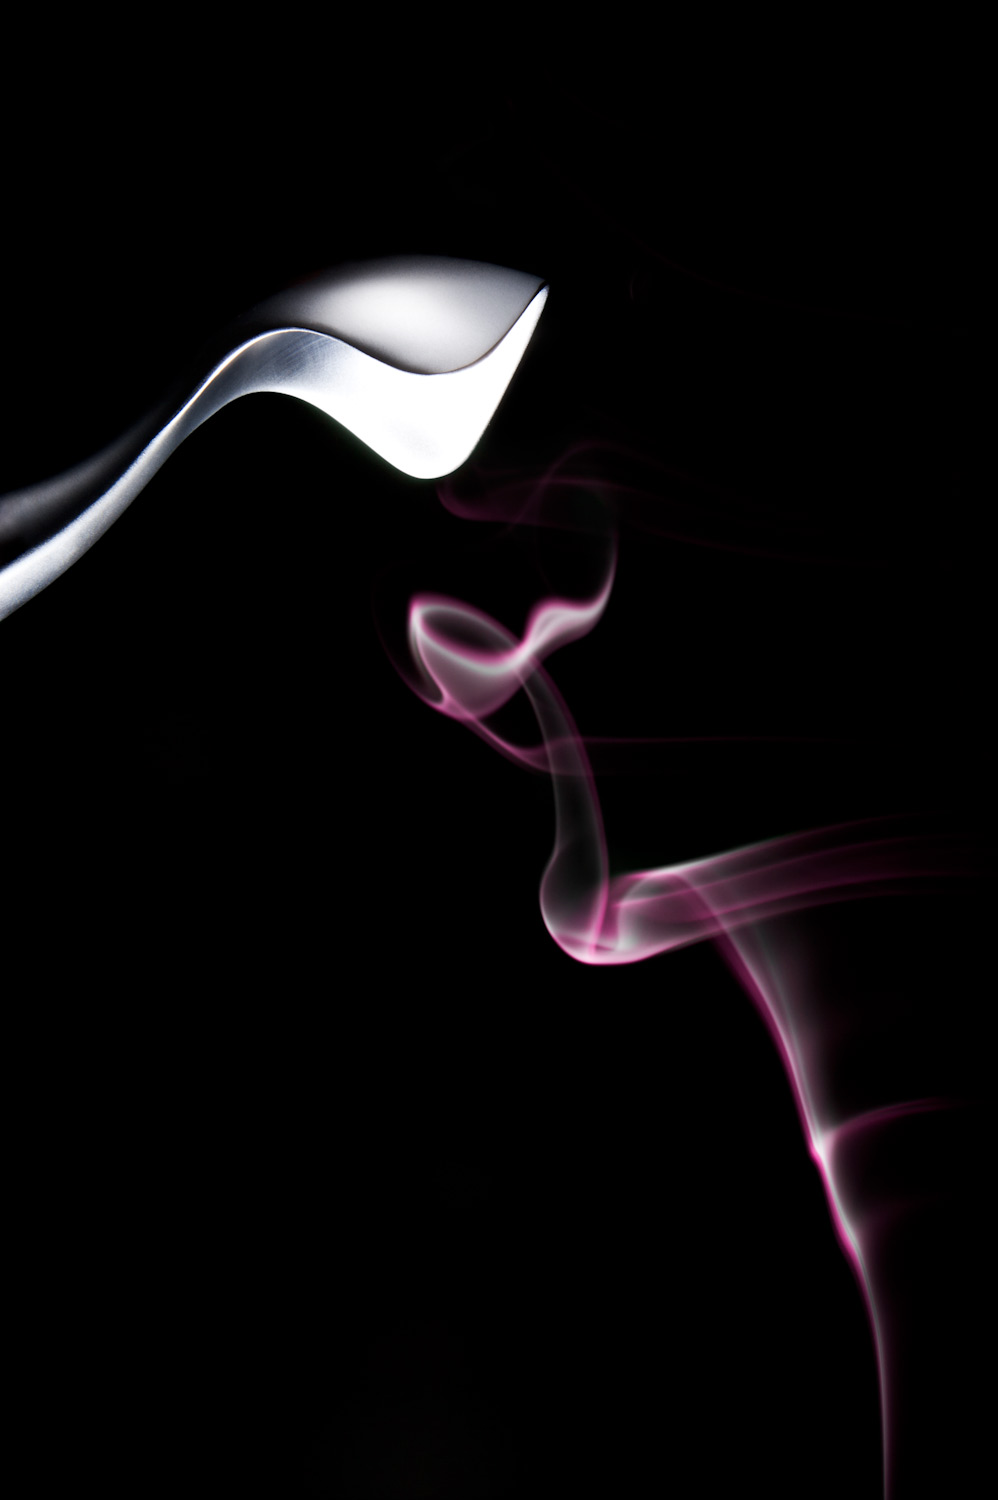 2011_04_18_Smoke-Still-Life_1383-as-Smart-Object-1.jpg